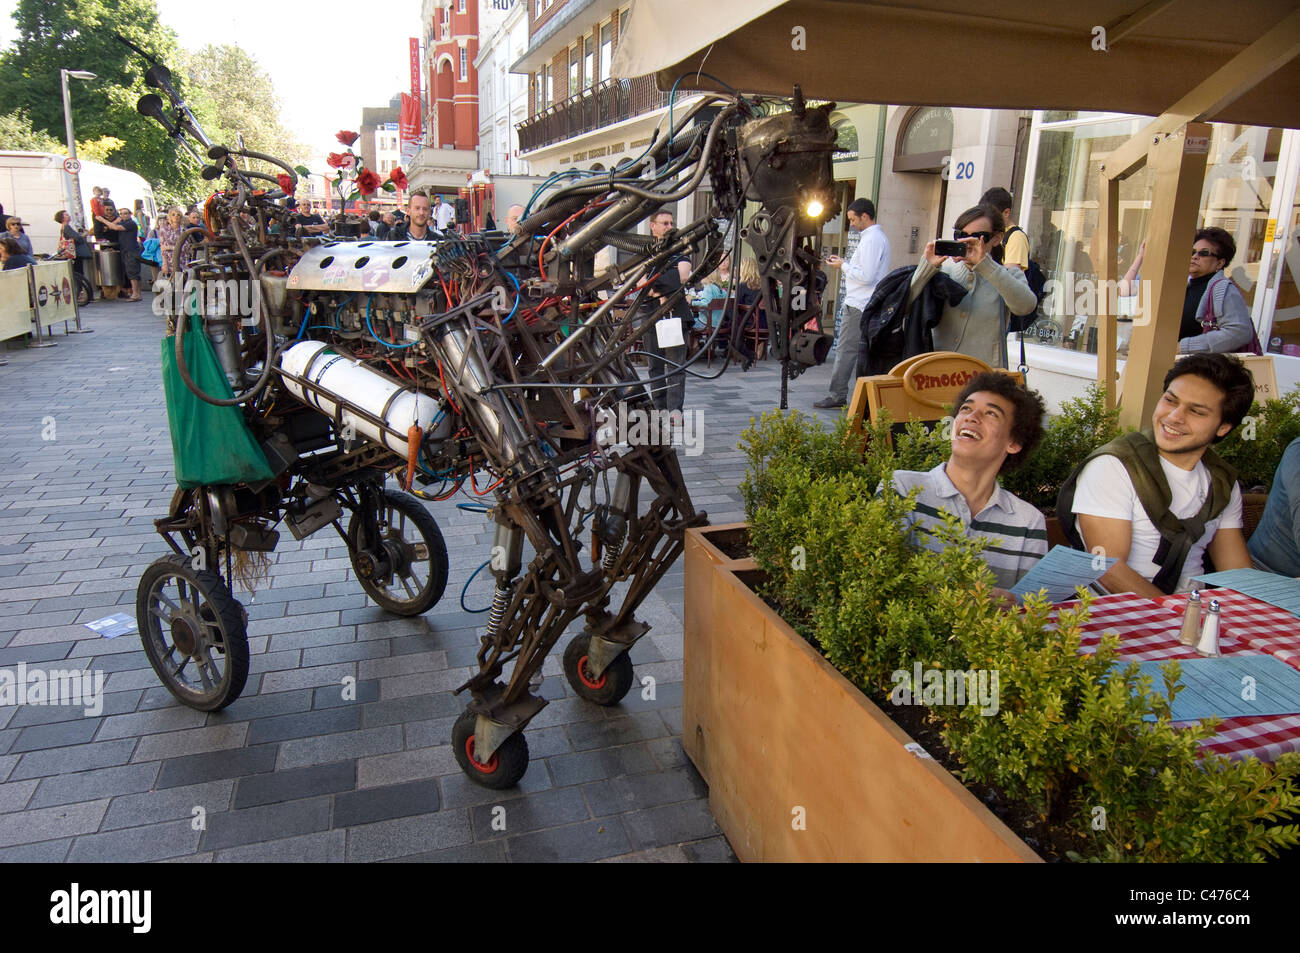 A mechanical horse amuses two young male tourists as part of the street theatre for the 2011 Brighton Festival Fringe - Stock Image